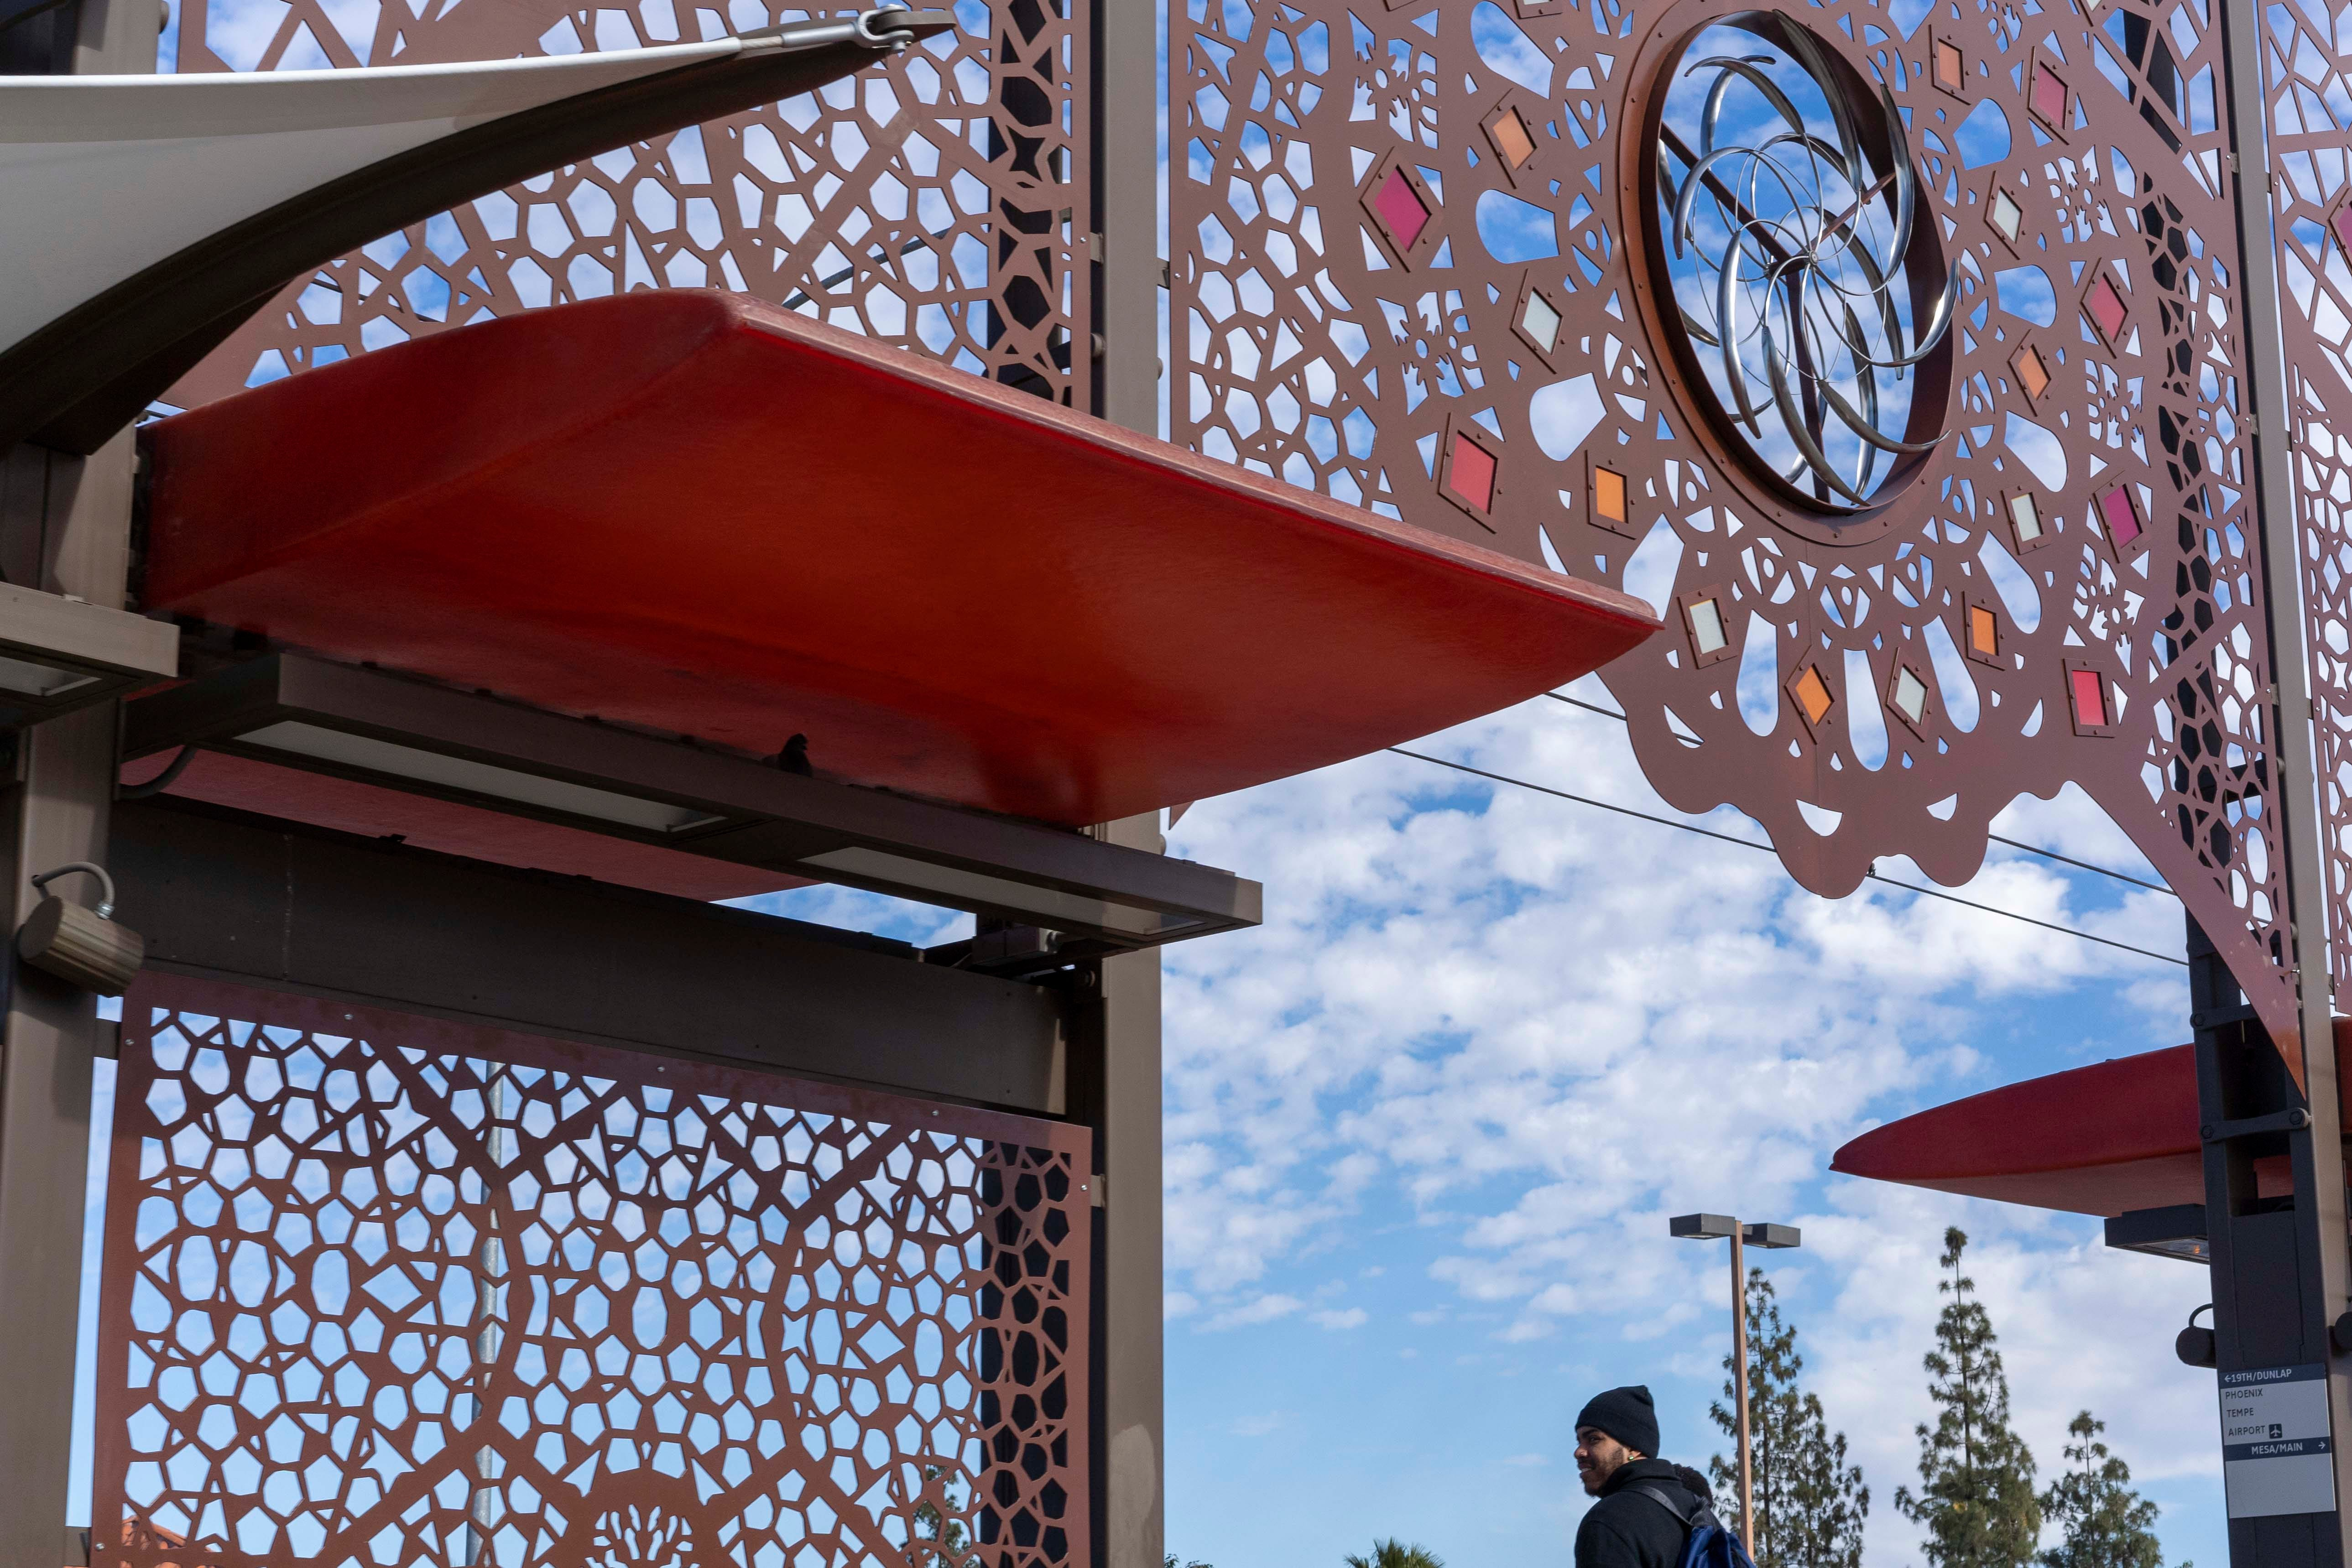 Public art can be seen at some light-rail stops around the Valley, including Tempe.